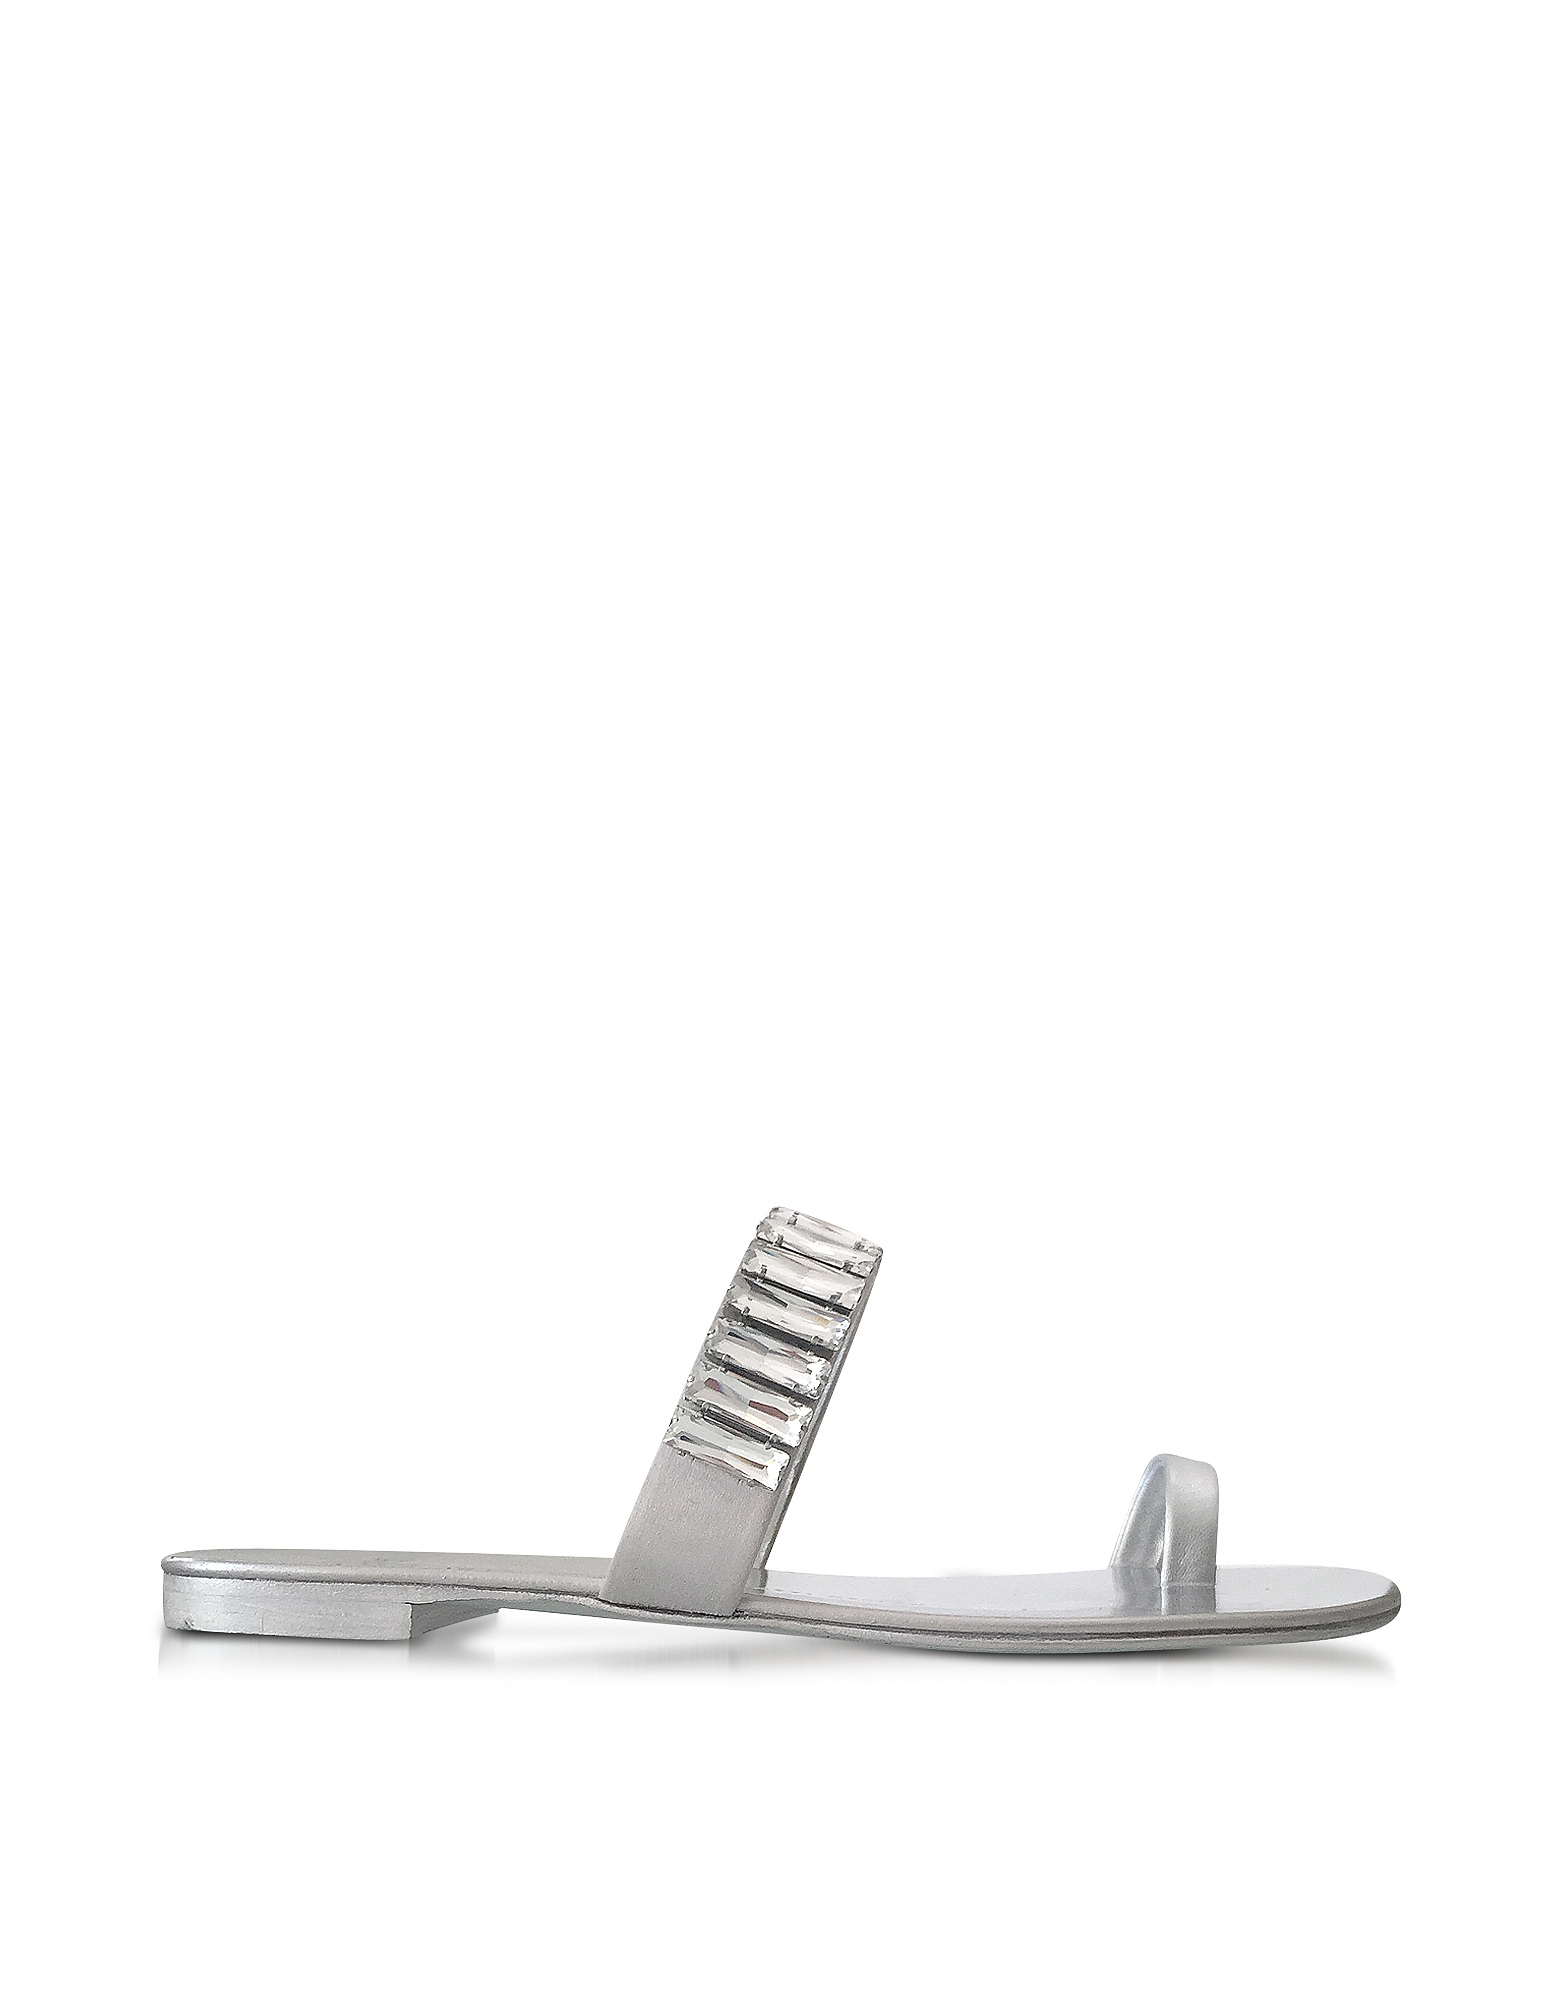 Giuseppe Zanotti Shoes, Pia Silver Leather Flat Sandal w/Crystals